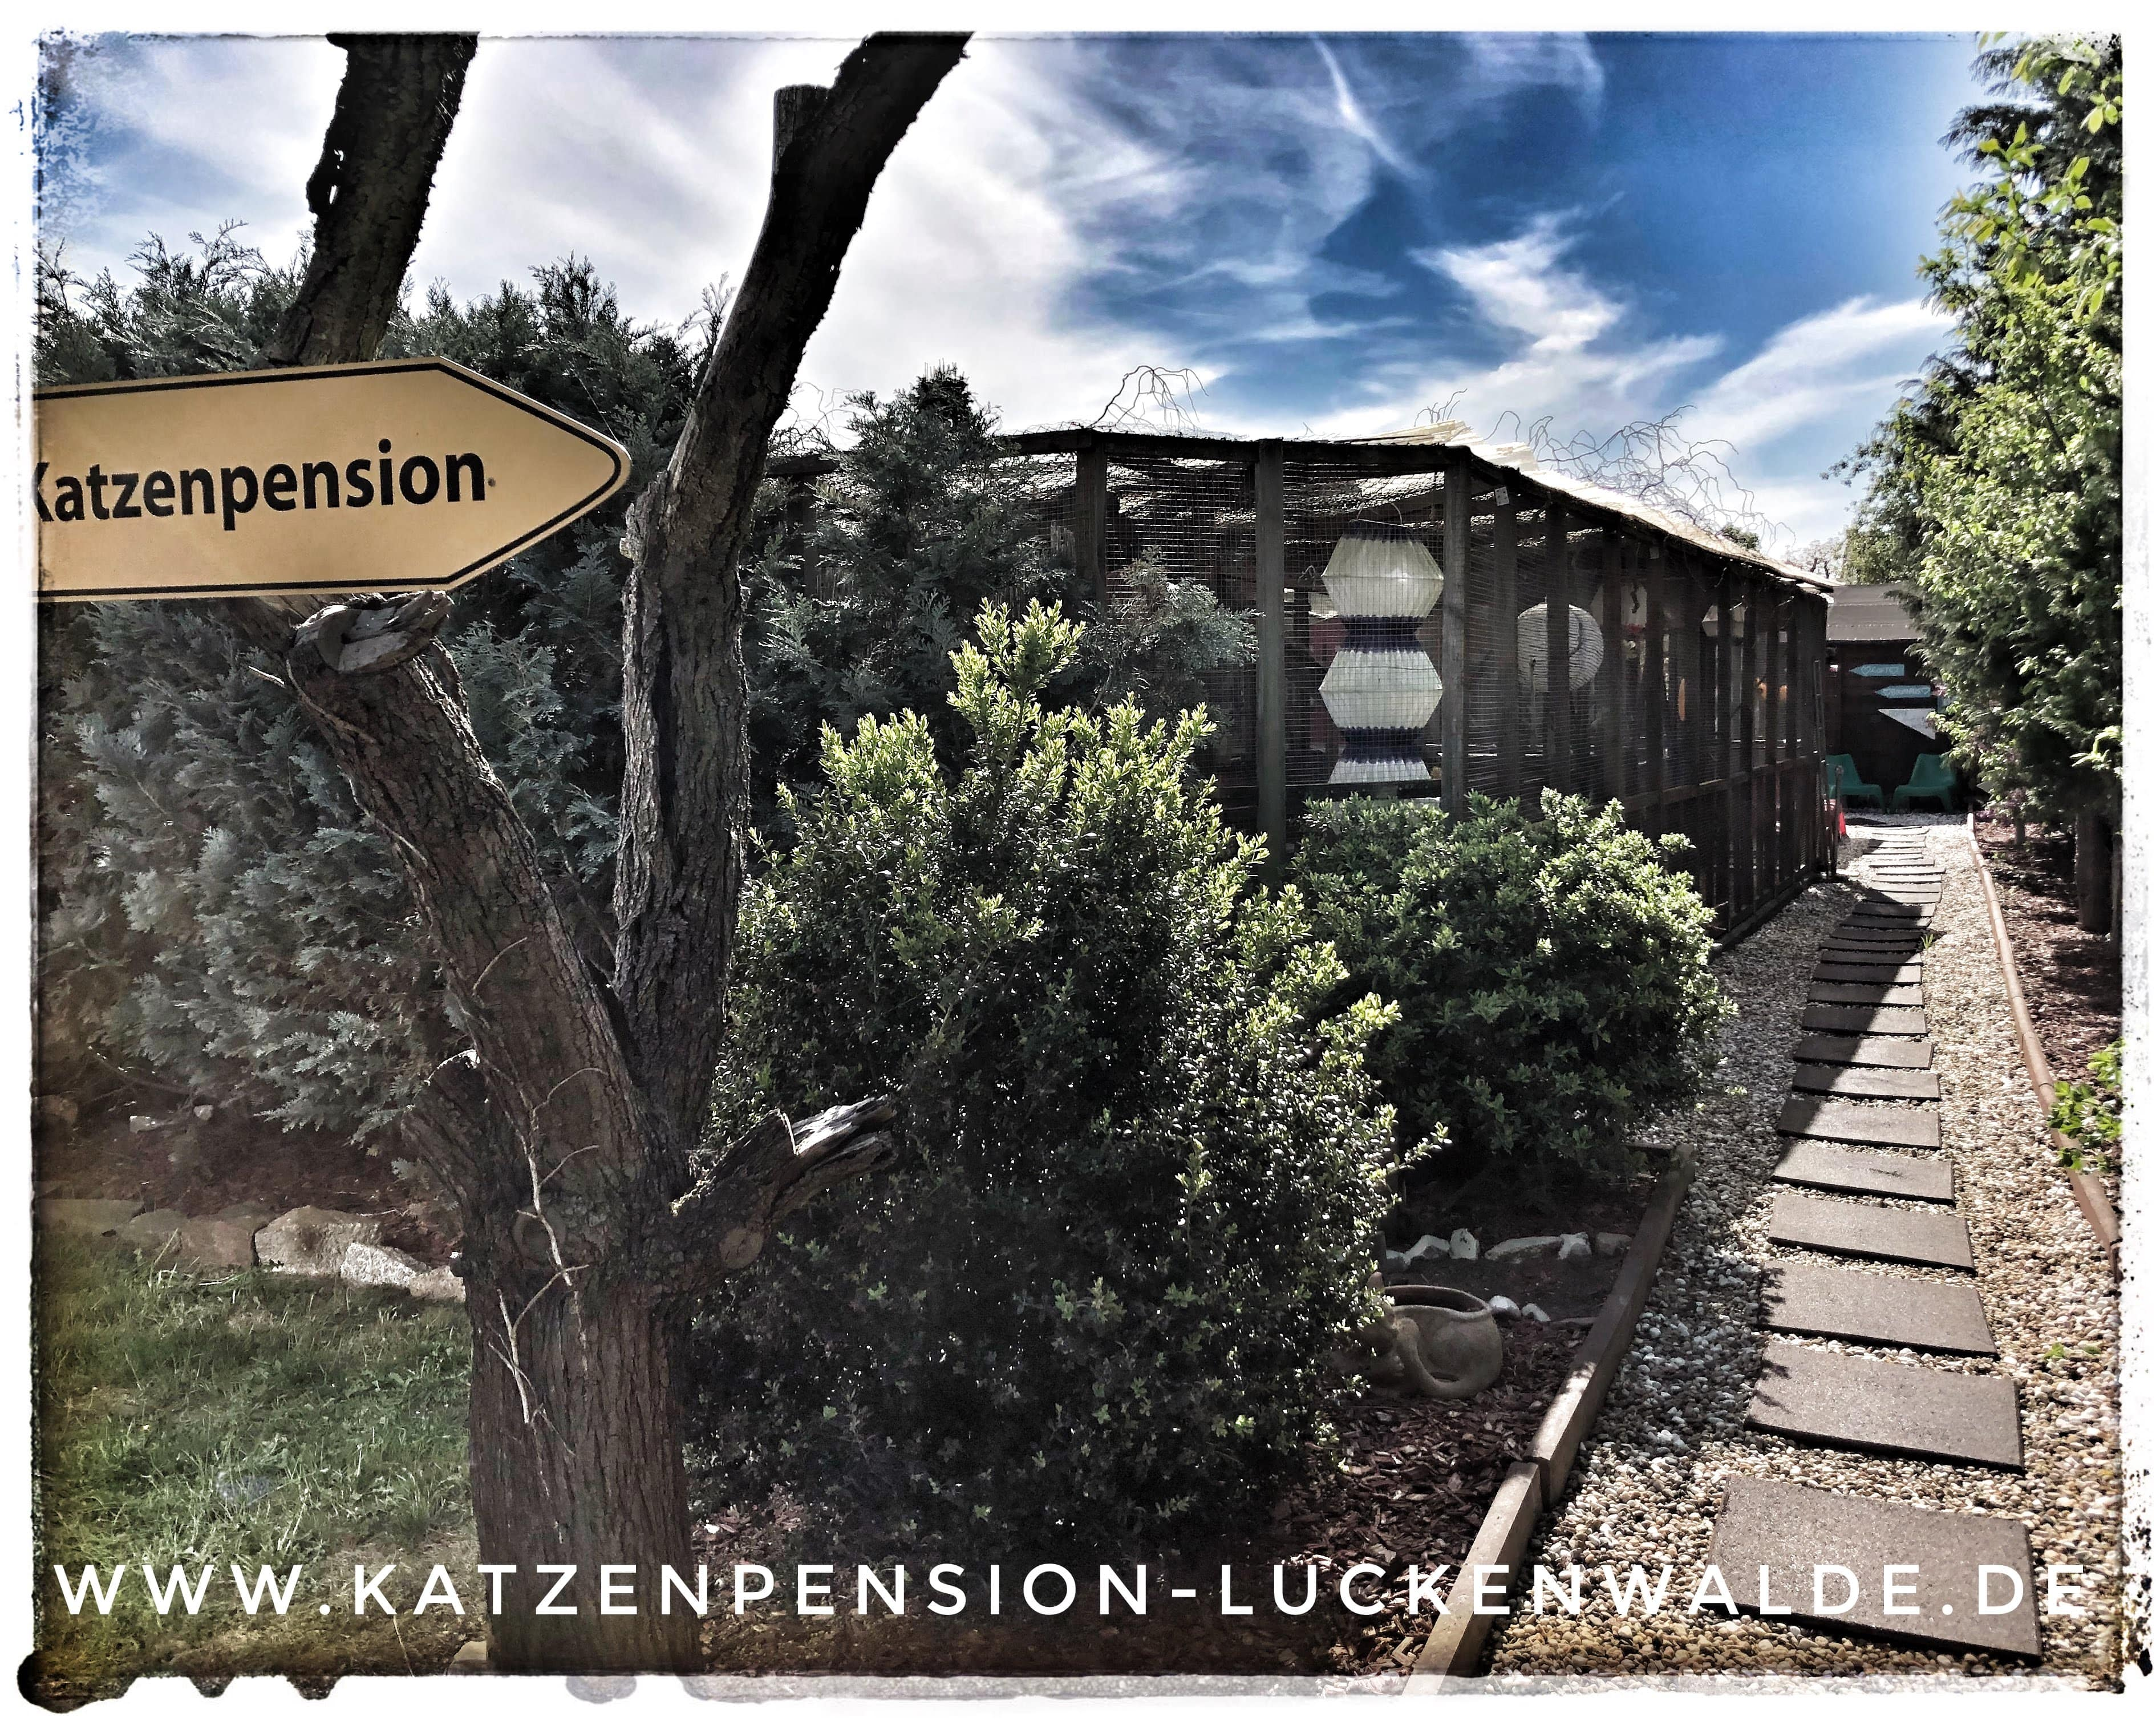 ####h1### - IMG 9530 min - Katzenpension - Tierpension - Tierbetreuung